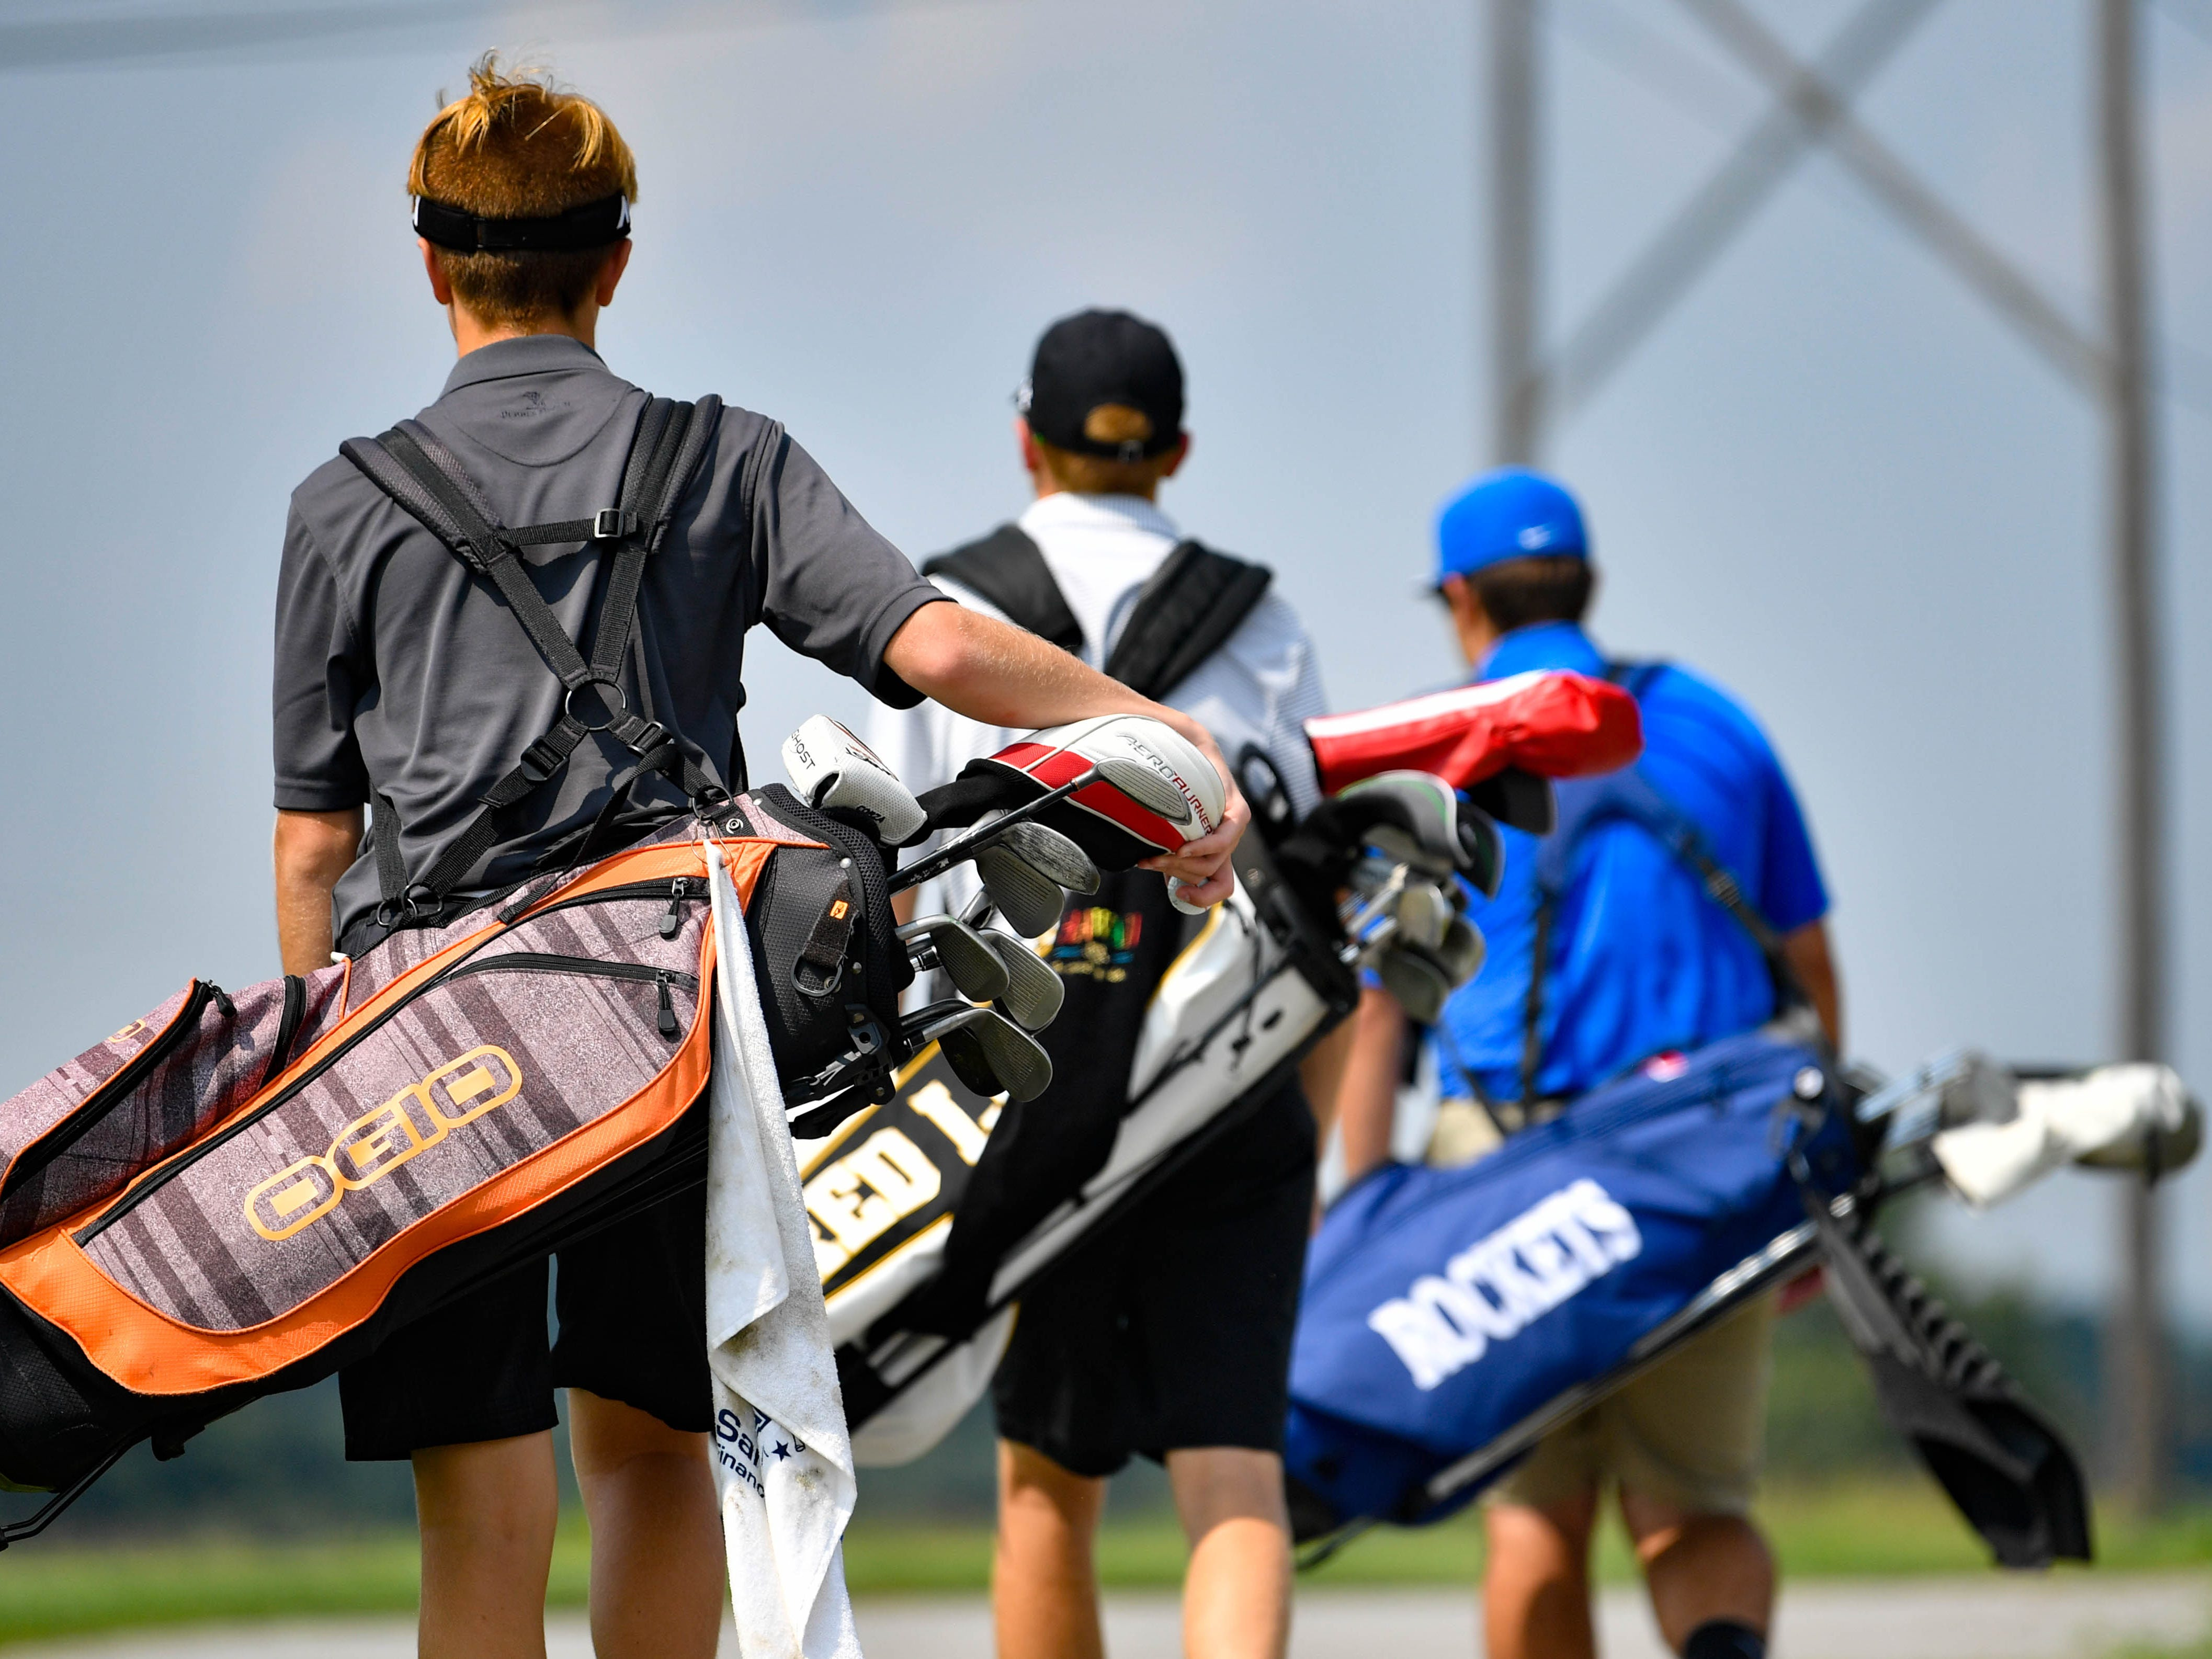 Dallastown, Spring Grove and Red Lion golfers journey to their next hole during a Division I golf match at Royal Manchester Golf Links, Wednesday, Aug. 16, 2018.